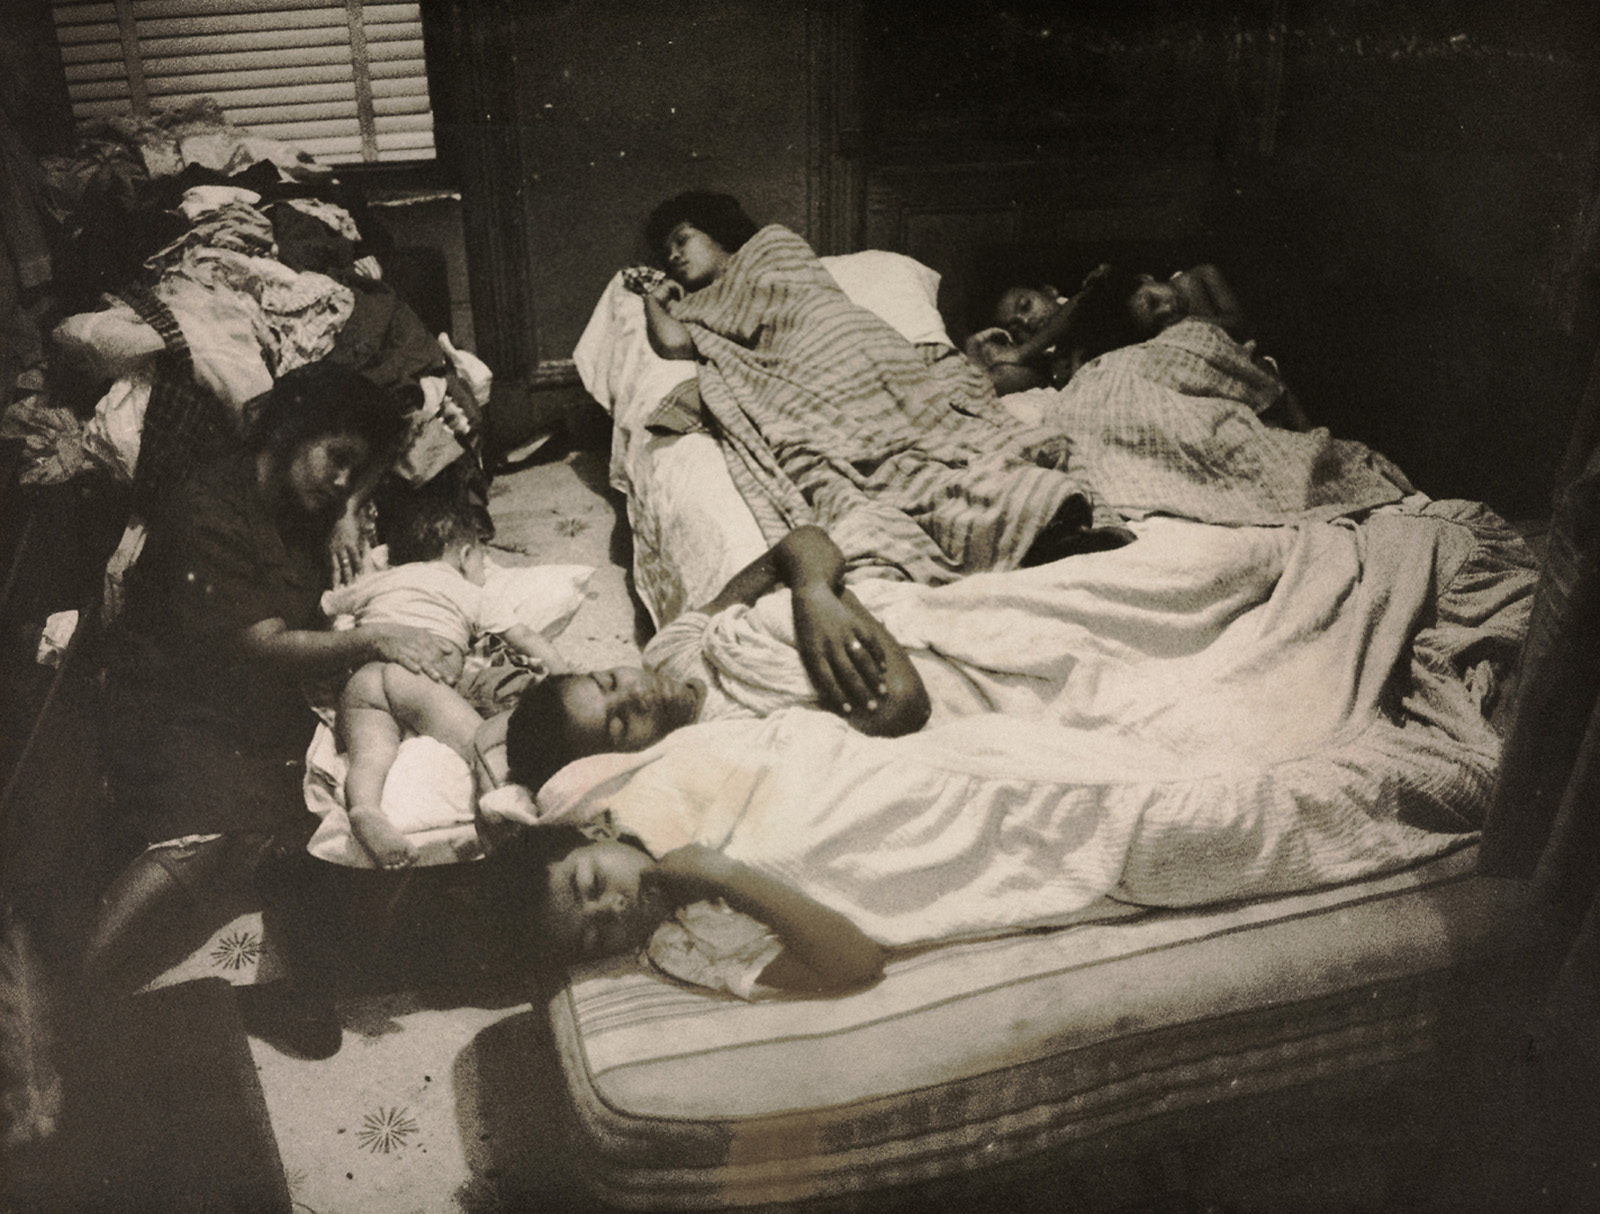 A family sleeping in a tiny room. They are crammed together on a mattress.